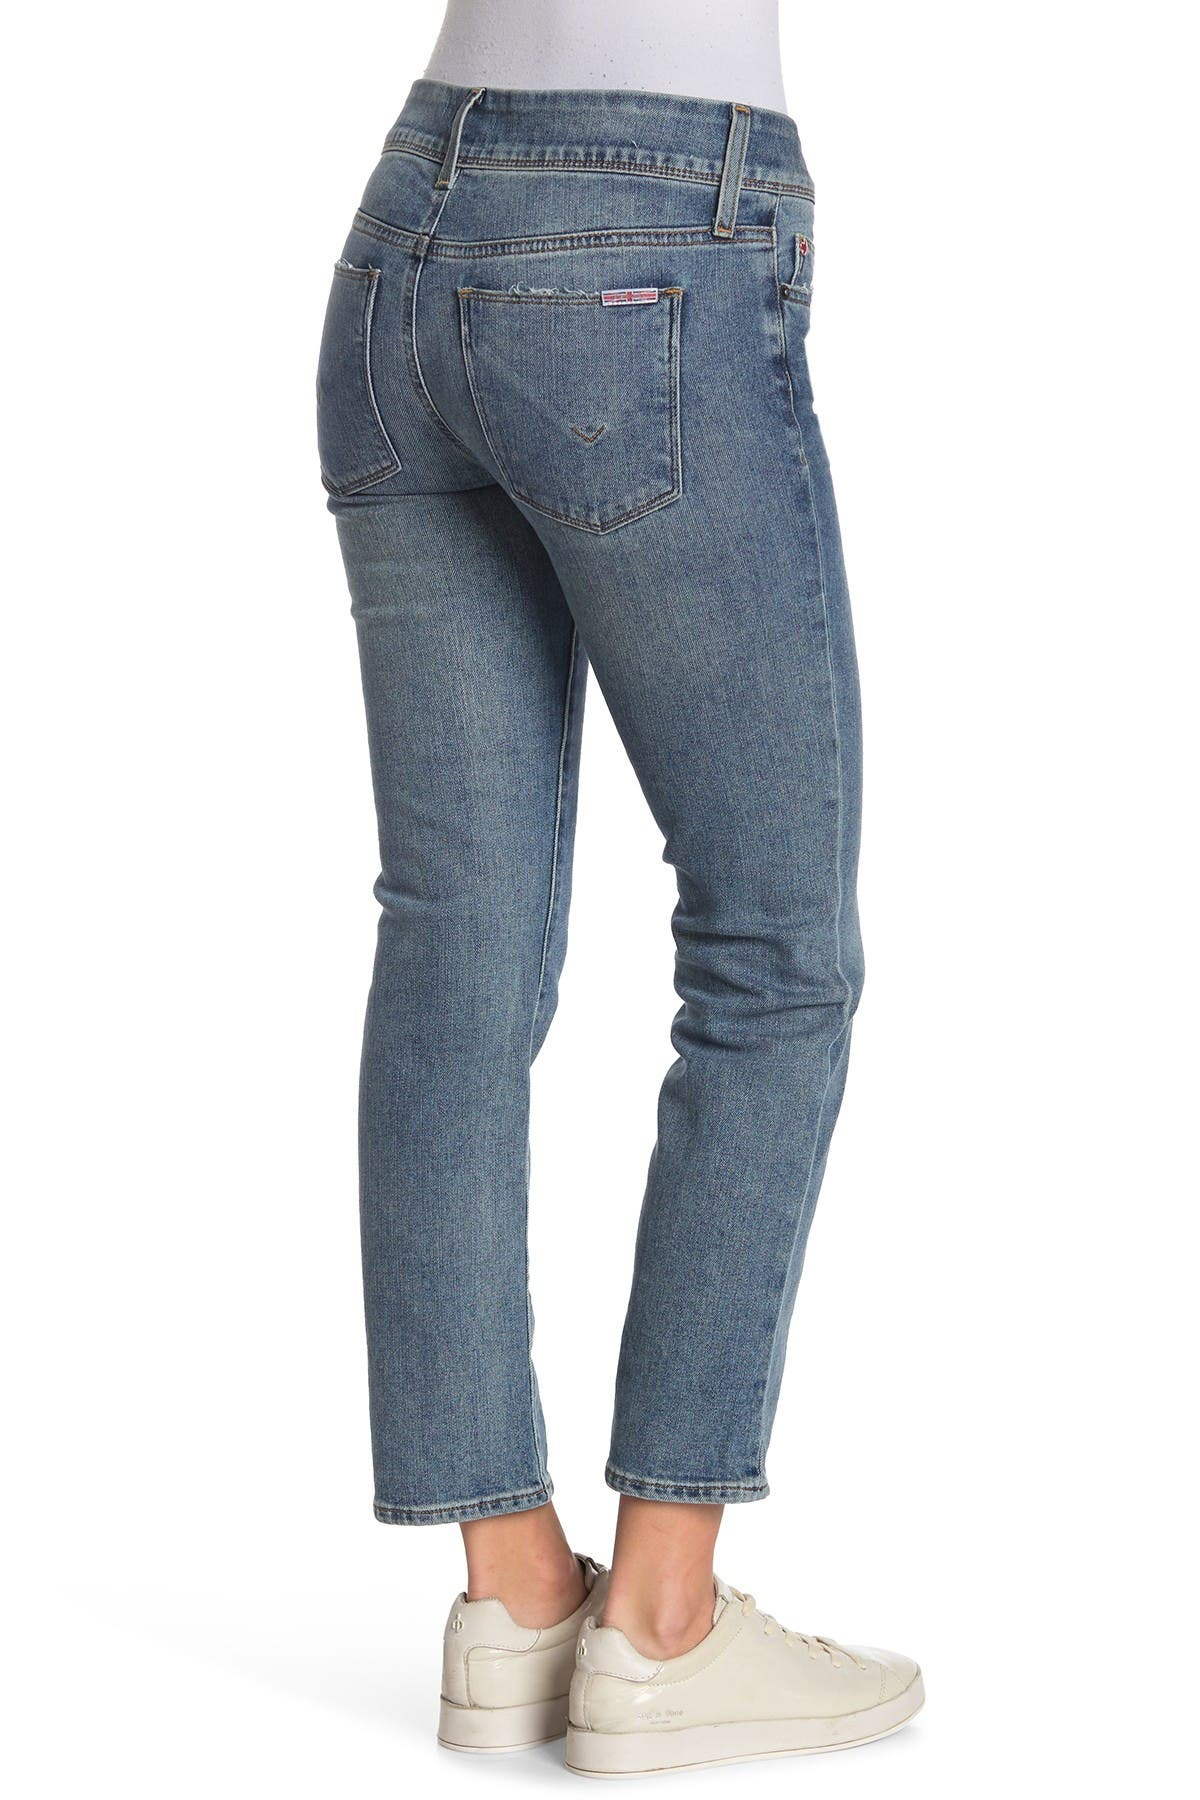 Image of HUDSON Jeans Ginny Crop Straight Leg Jeans